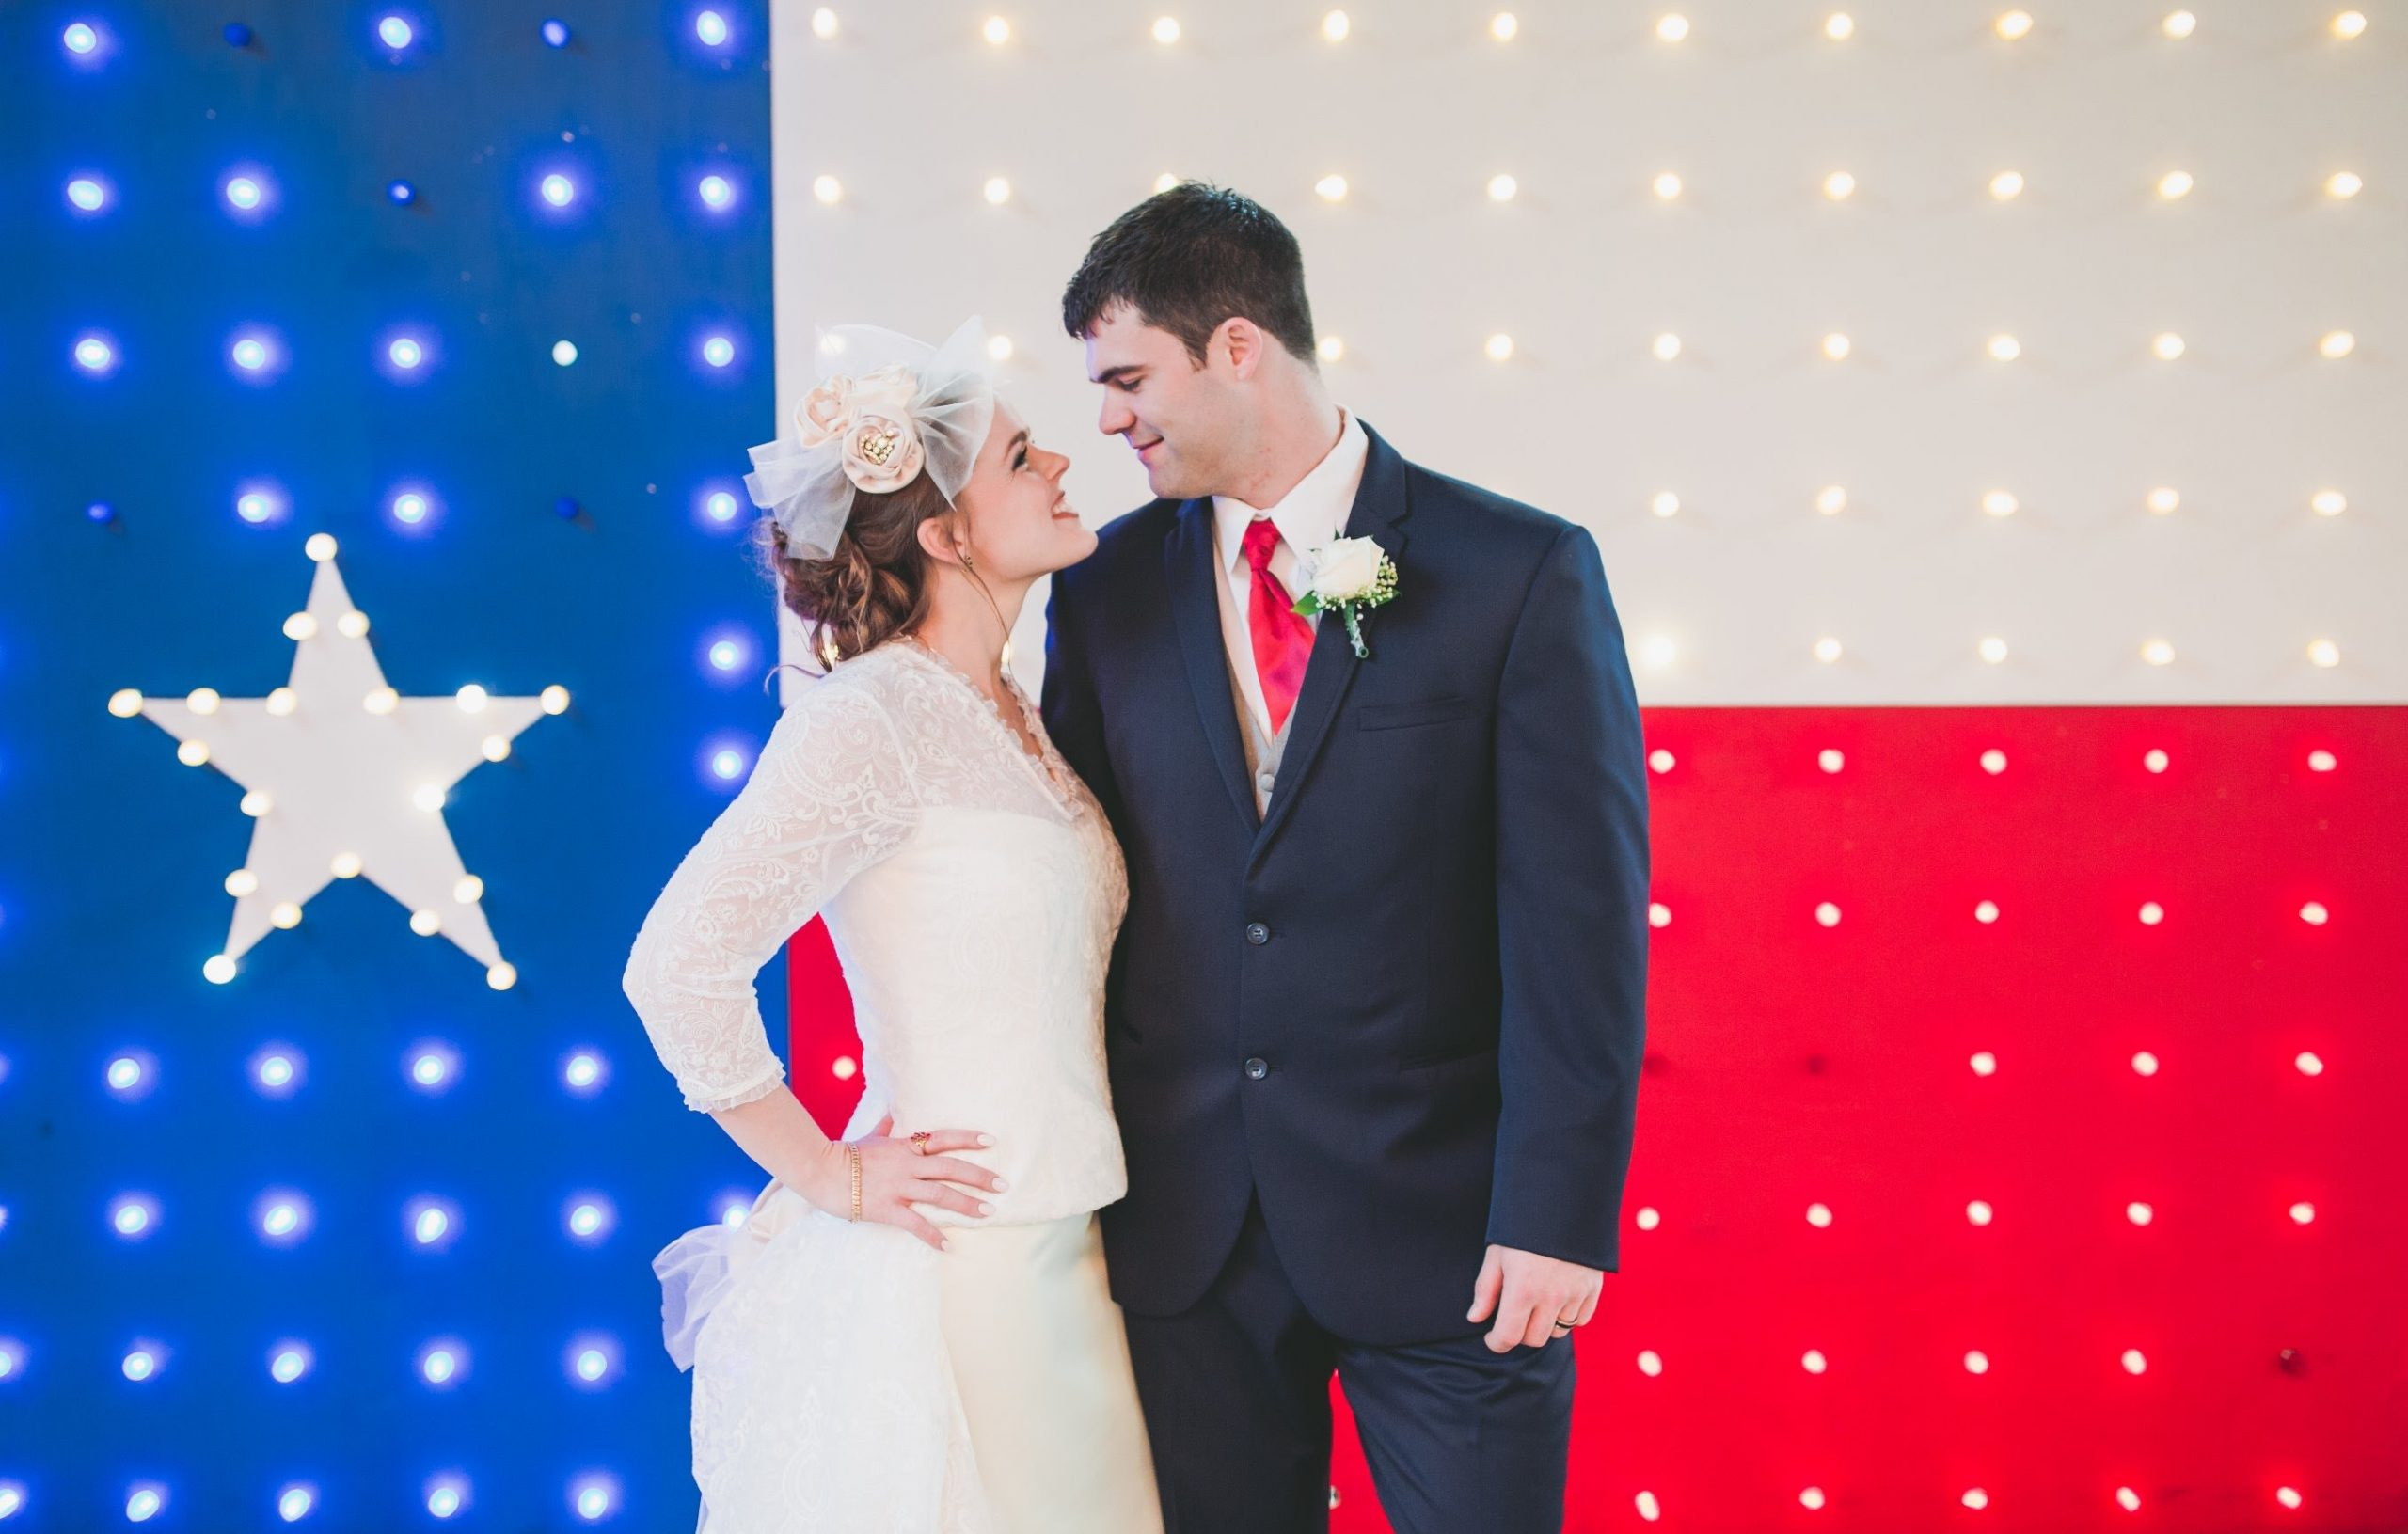 A bride and groom stand in front of an illuminated Texas flag.